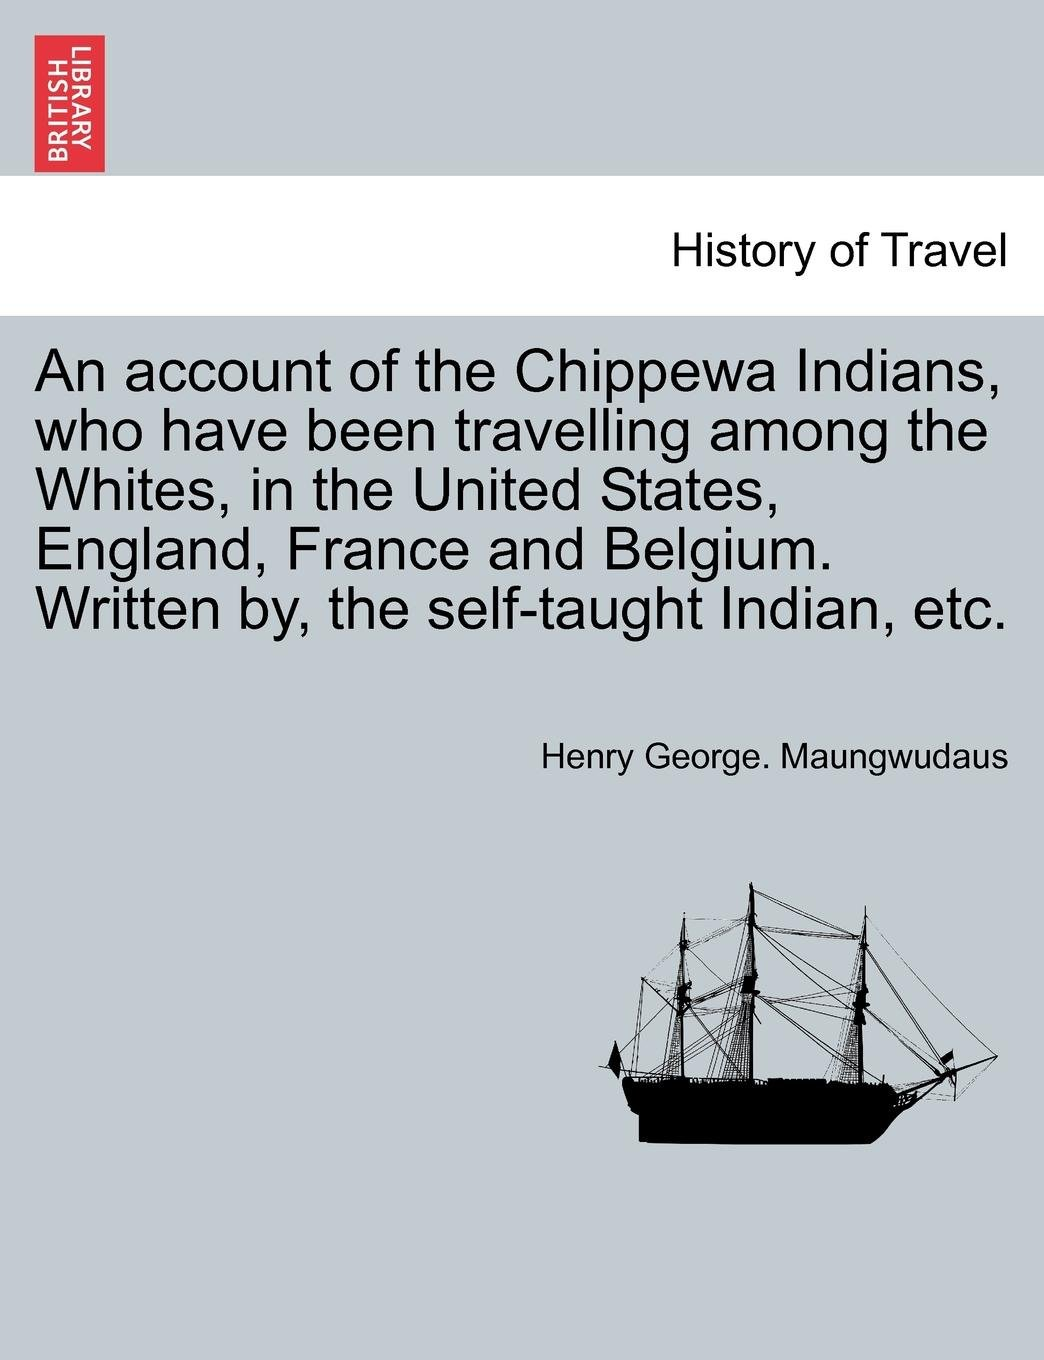 An account of the Chippewa Indians, who have been travelling among the Whites, in the United States, England, France and Belgium. Written by, the self-taught Indian, etc.